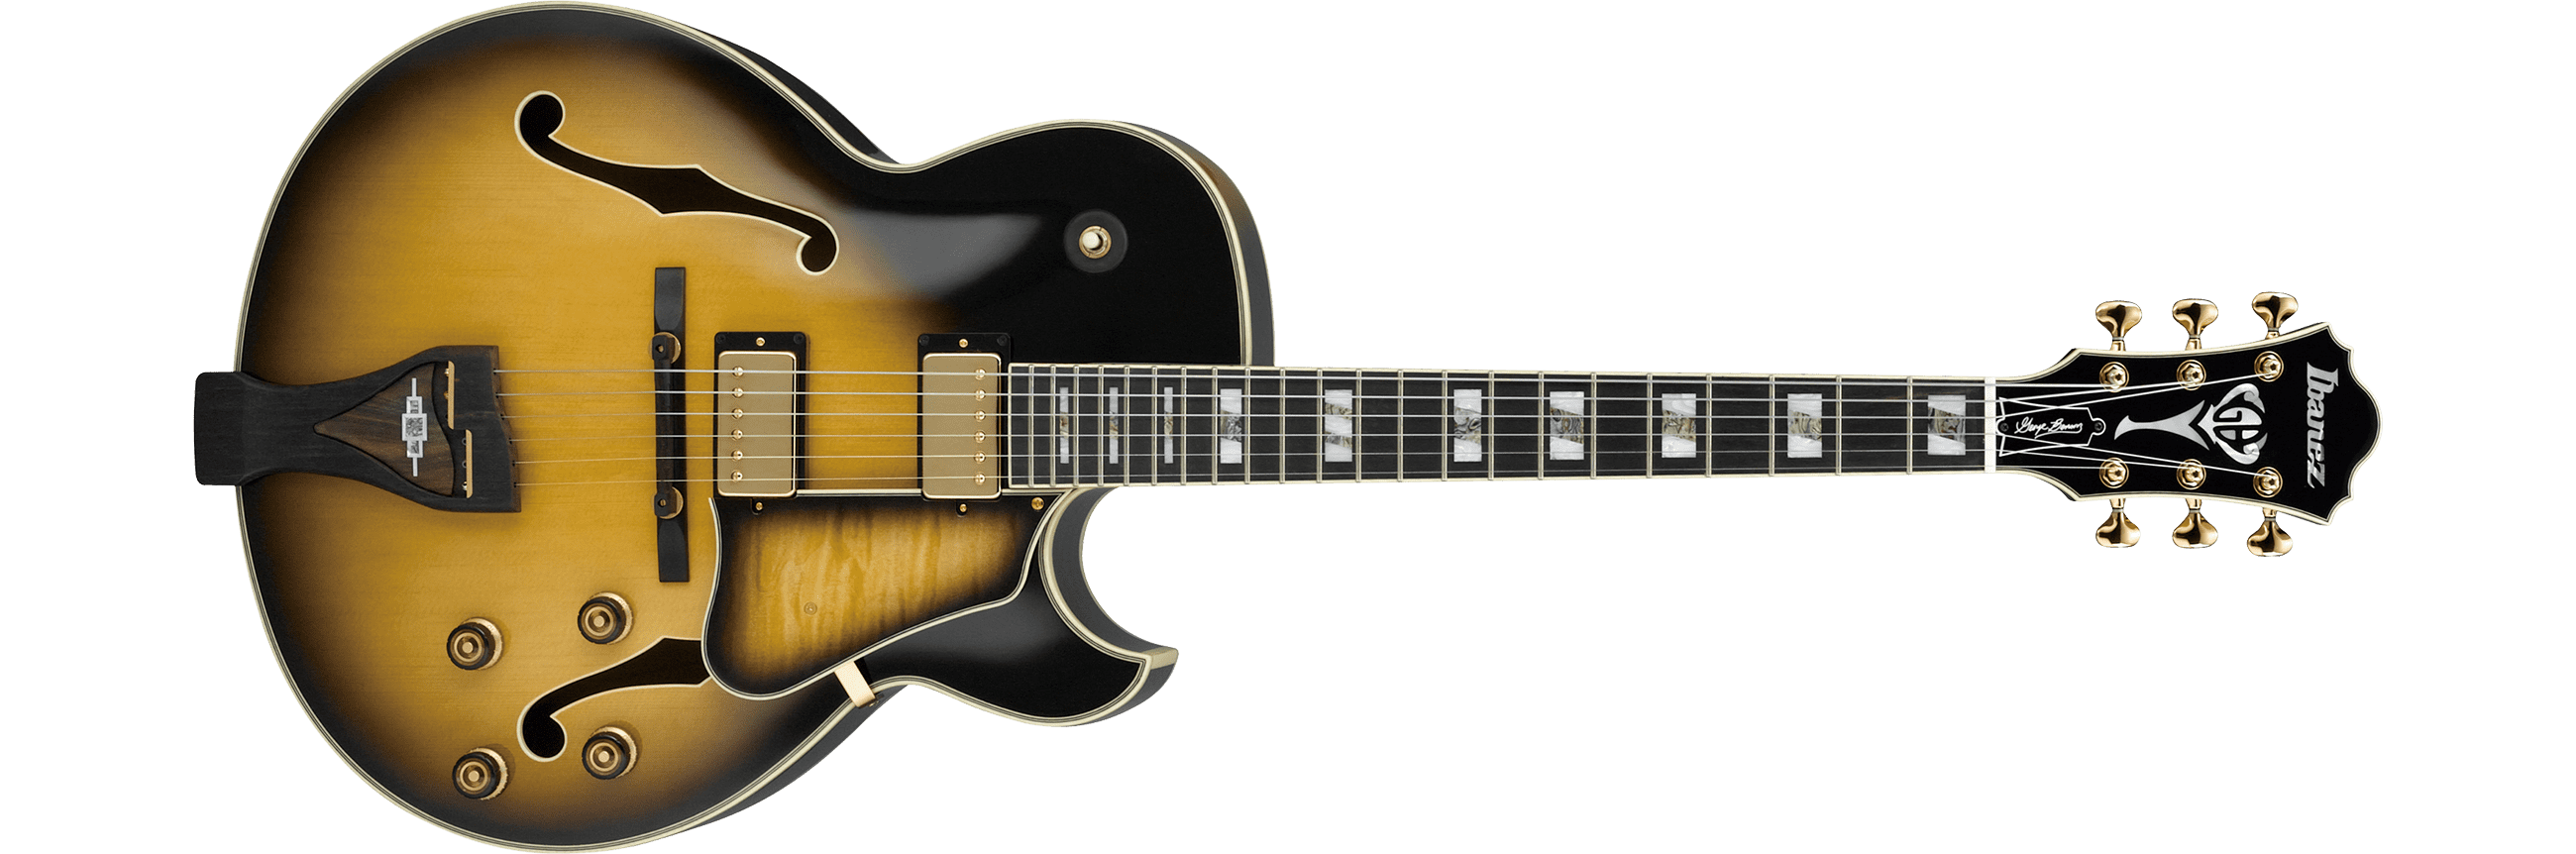 LGB300 | GB | HOLLOW BOS | PRODUCTS | Ibanez guitars